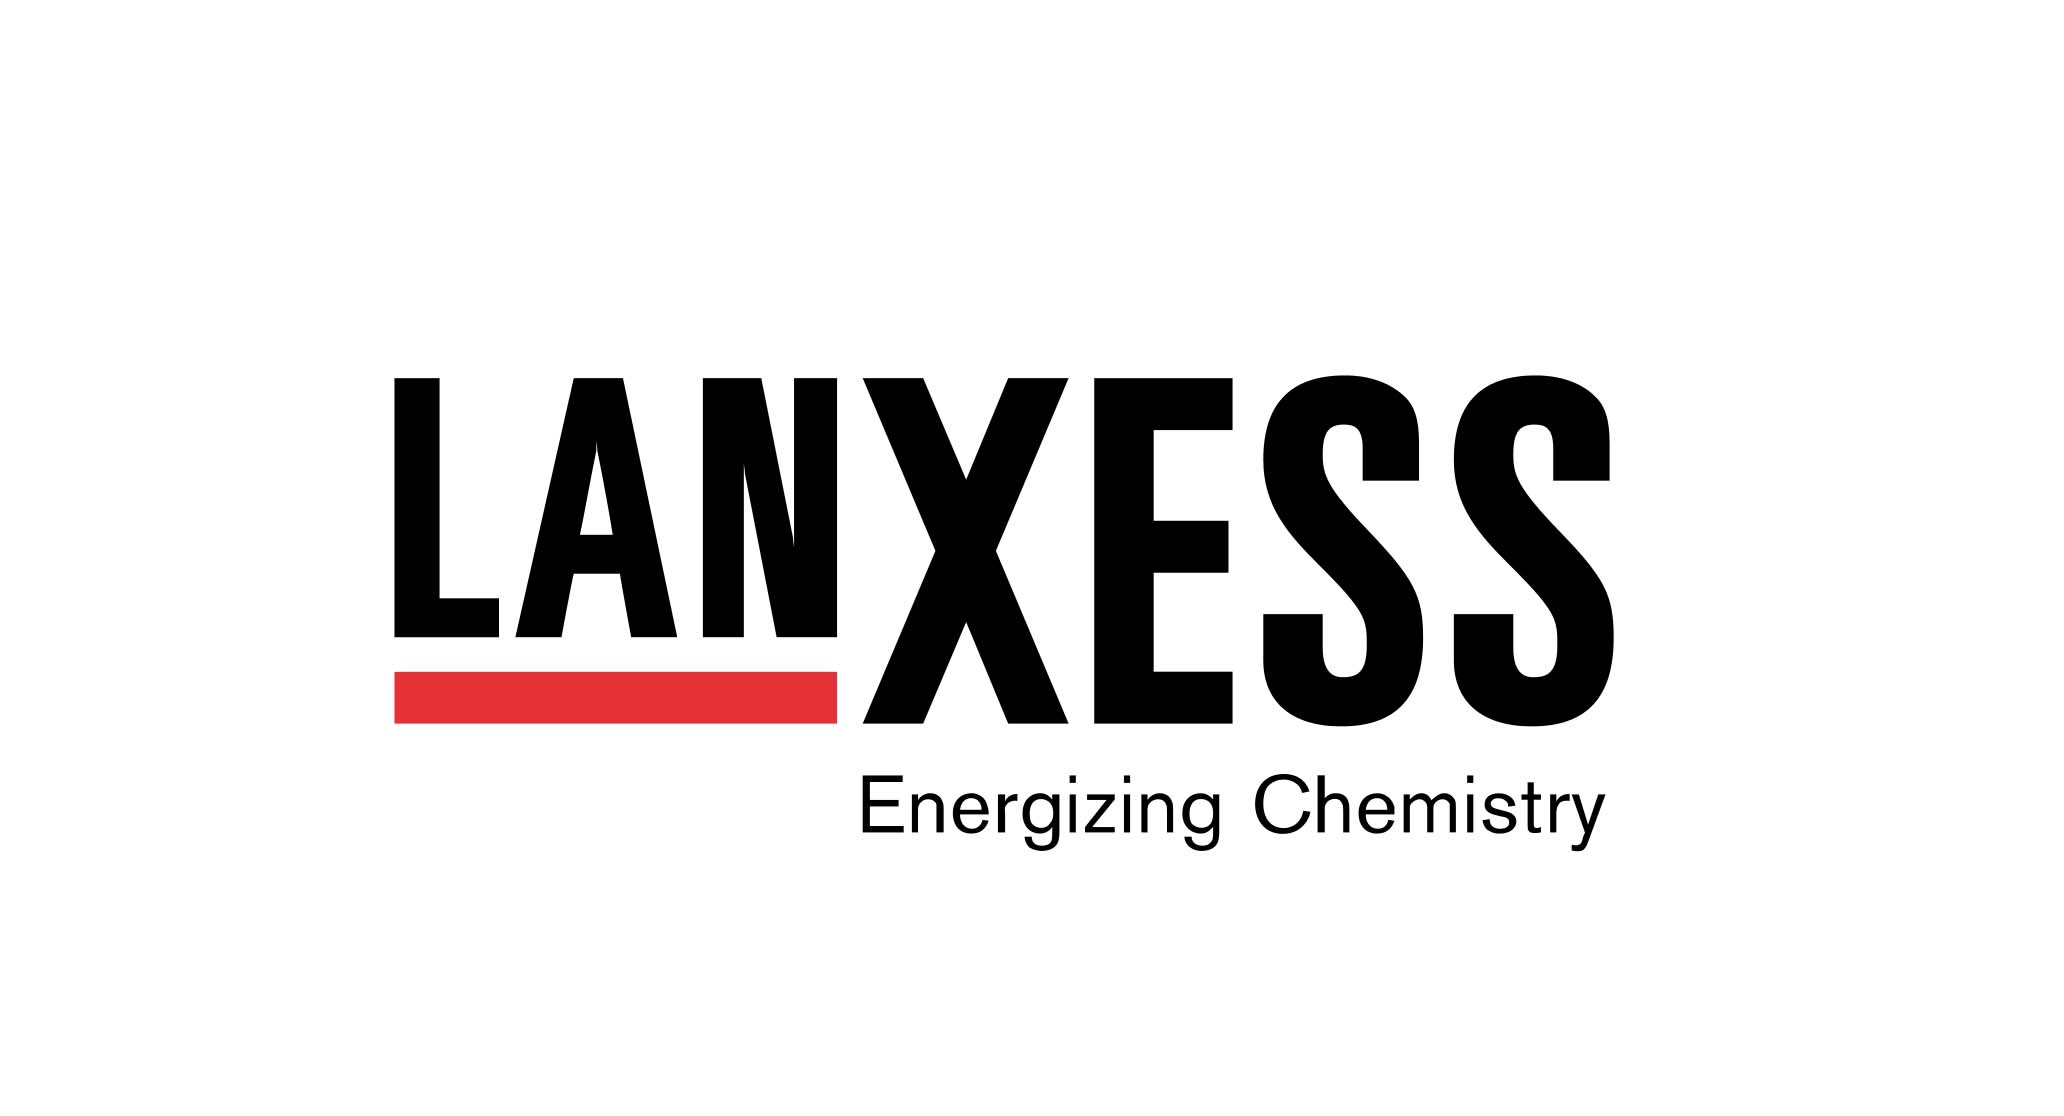 LANXESS achieves full-year target for 2019 despite challenging environment